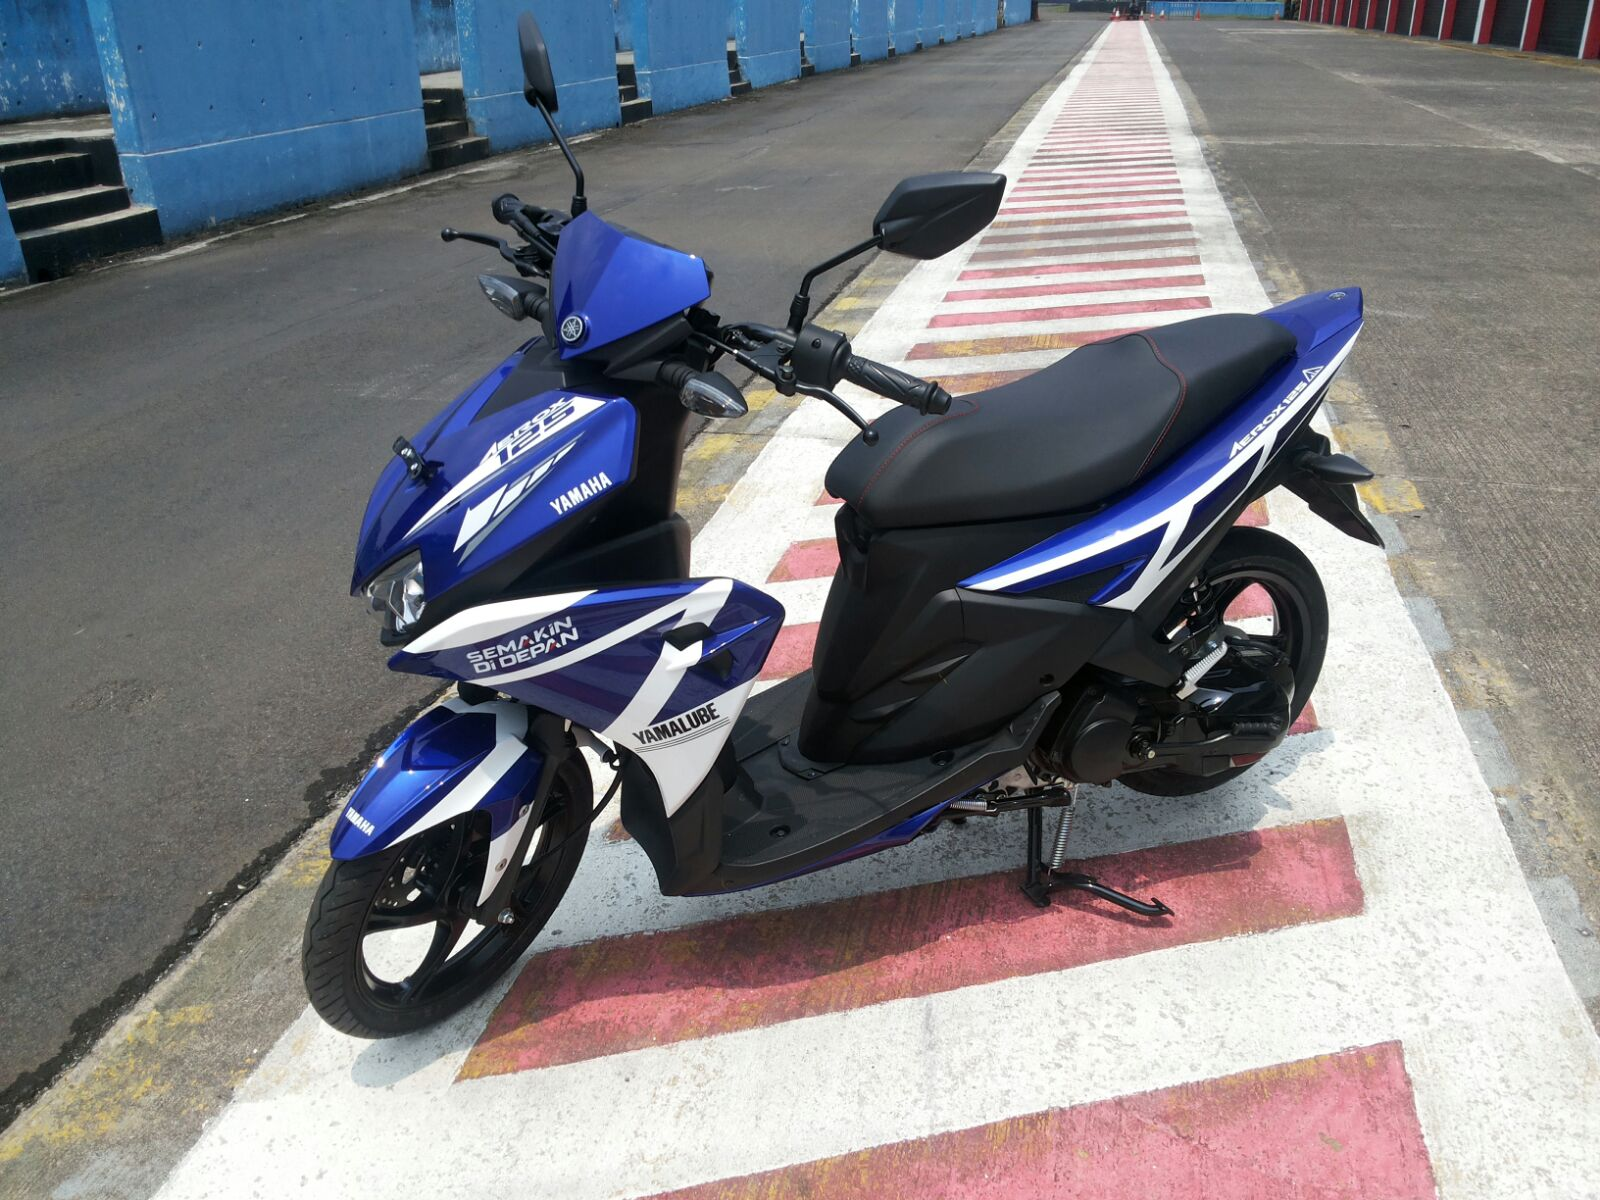 Top Modifikasi Motor Aerox 125 Terbaru  Modifikasi Motor